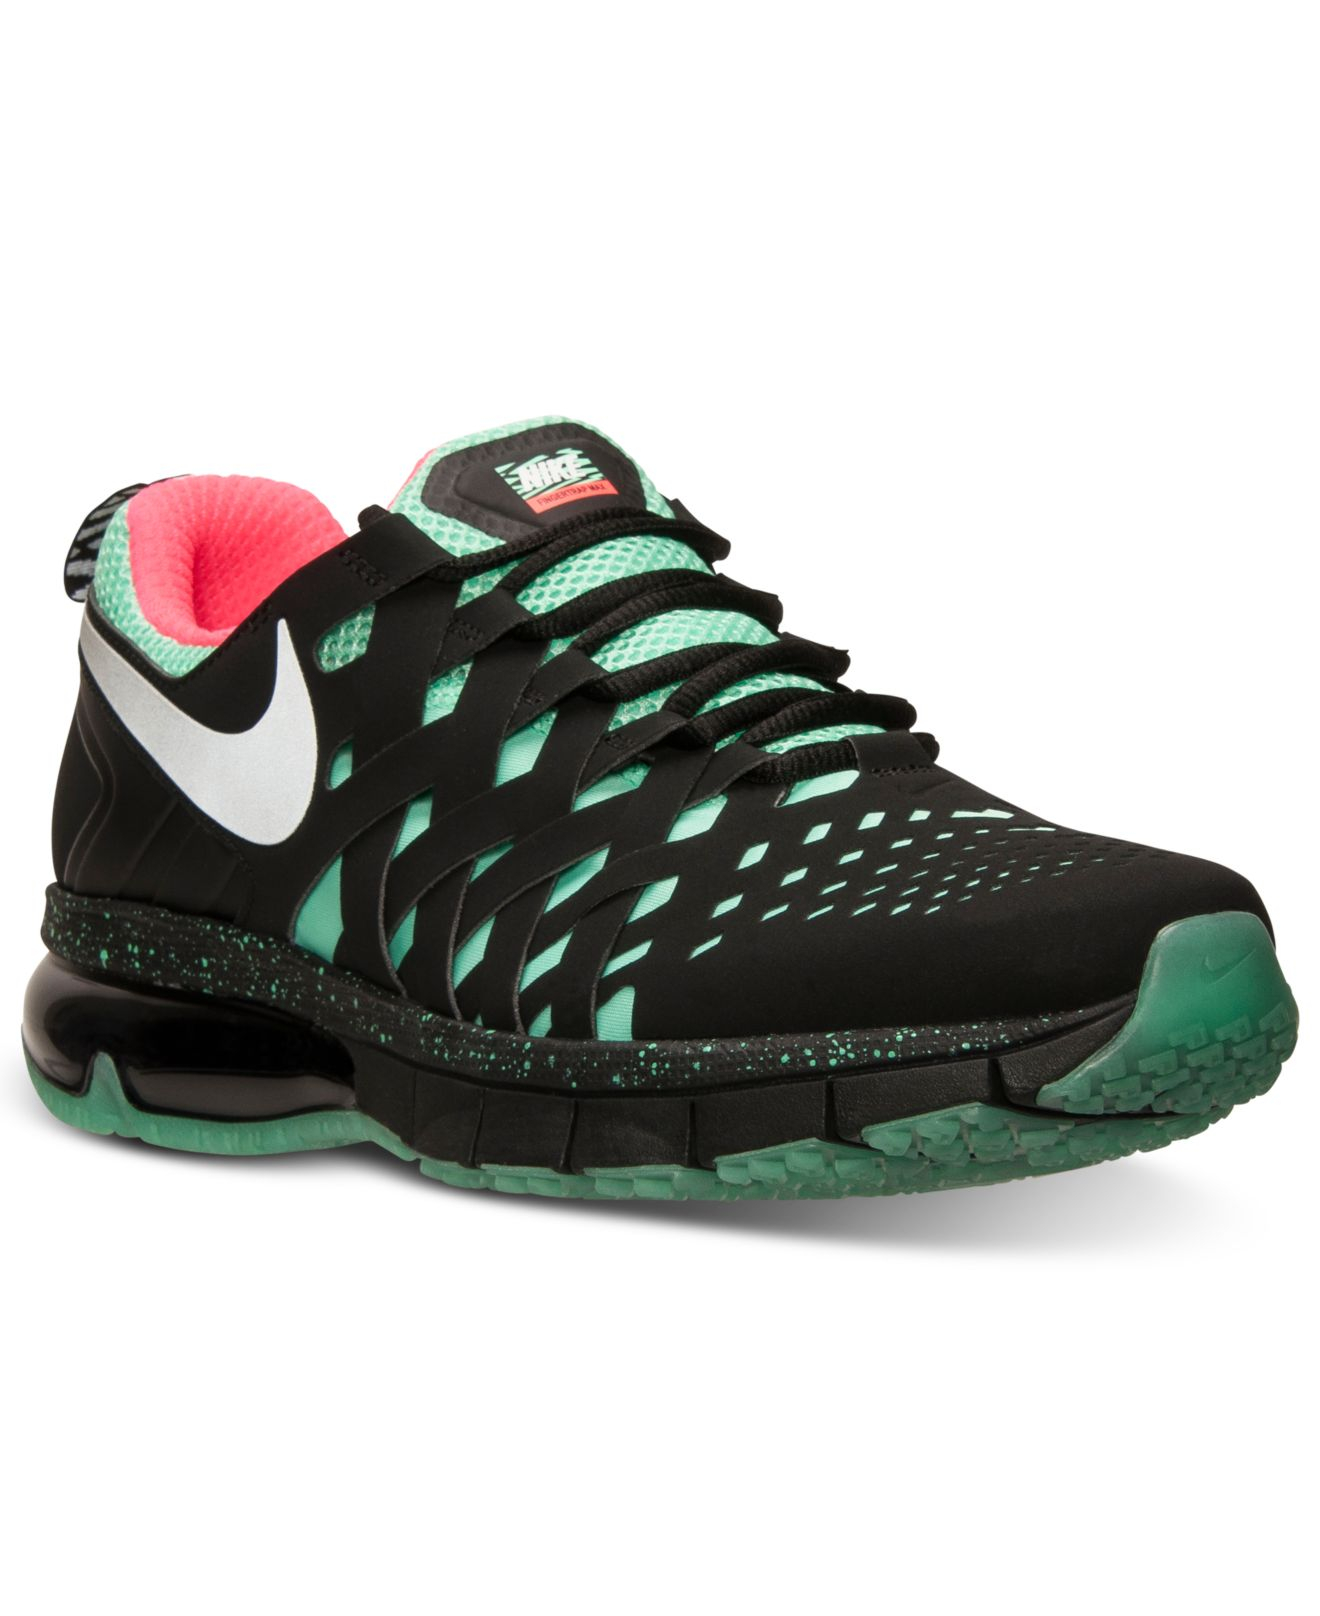 nike men 39 s fingertrap air max nrg training sneakers from. Black Bedroom Furniture Sets. Home Design Ideas